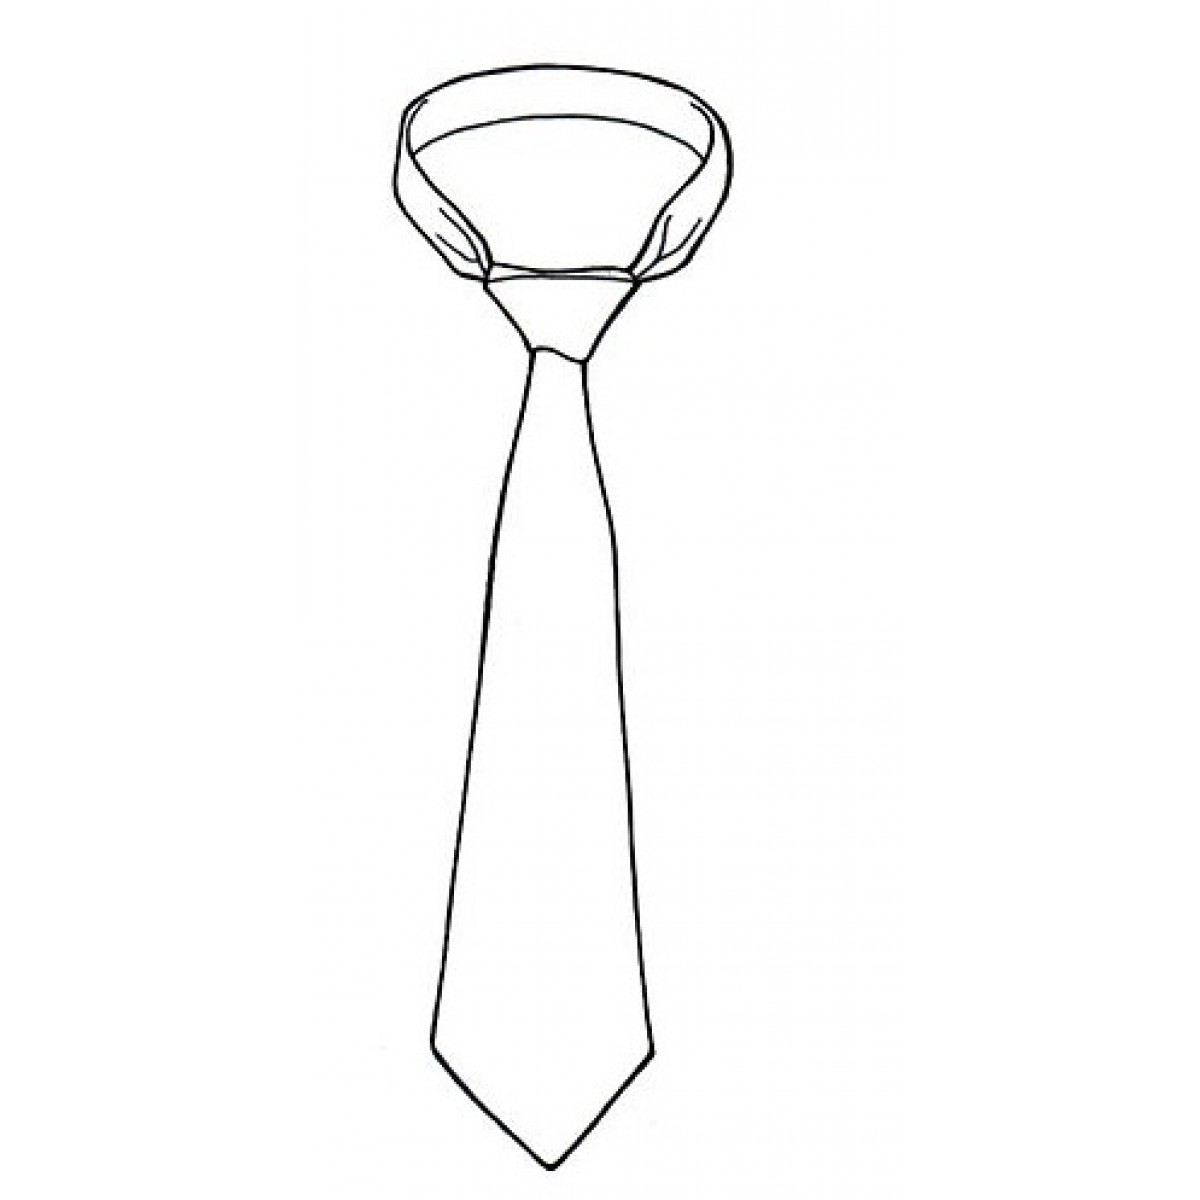 1200x1200 Drawing Of A Tie